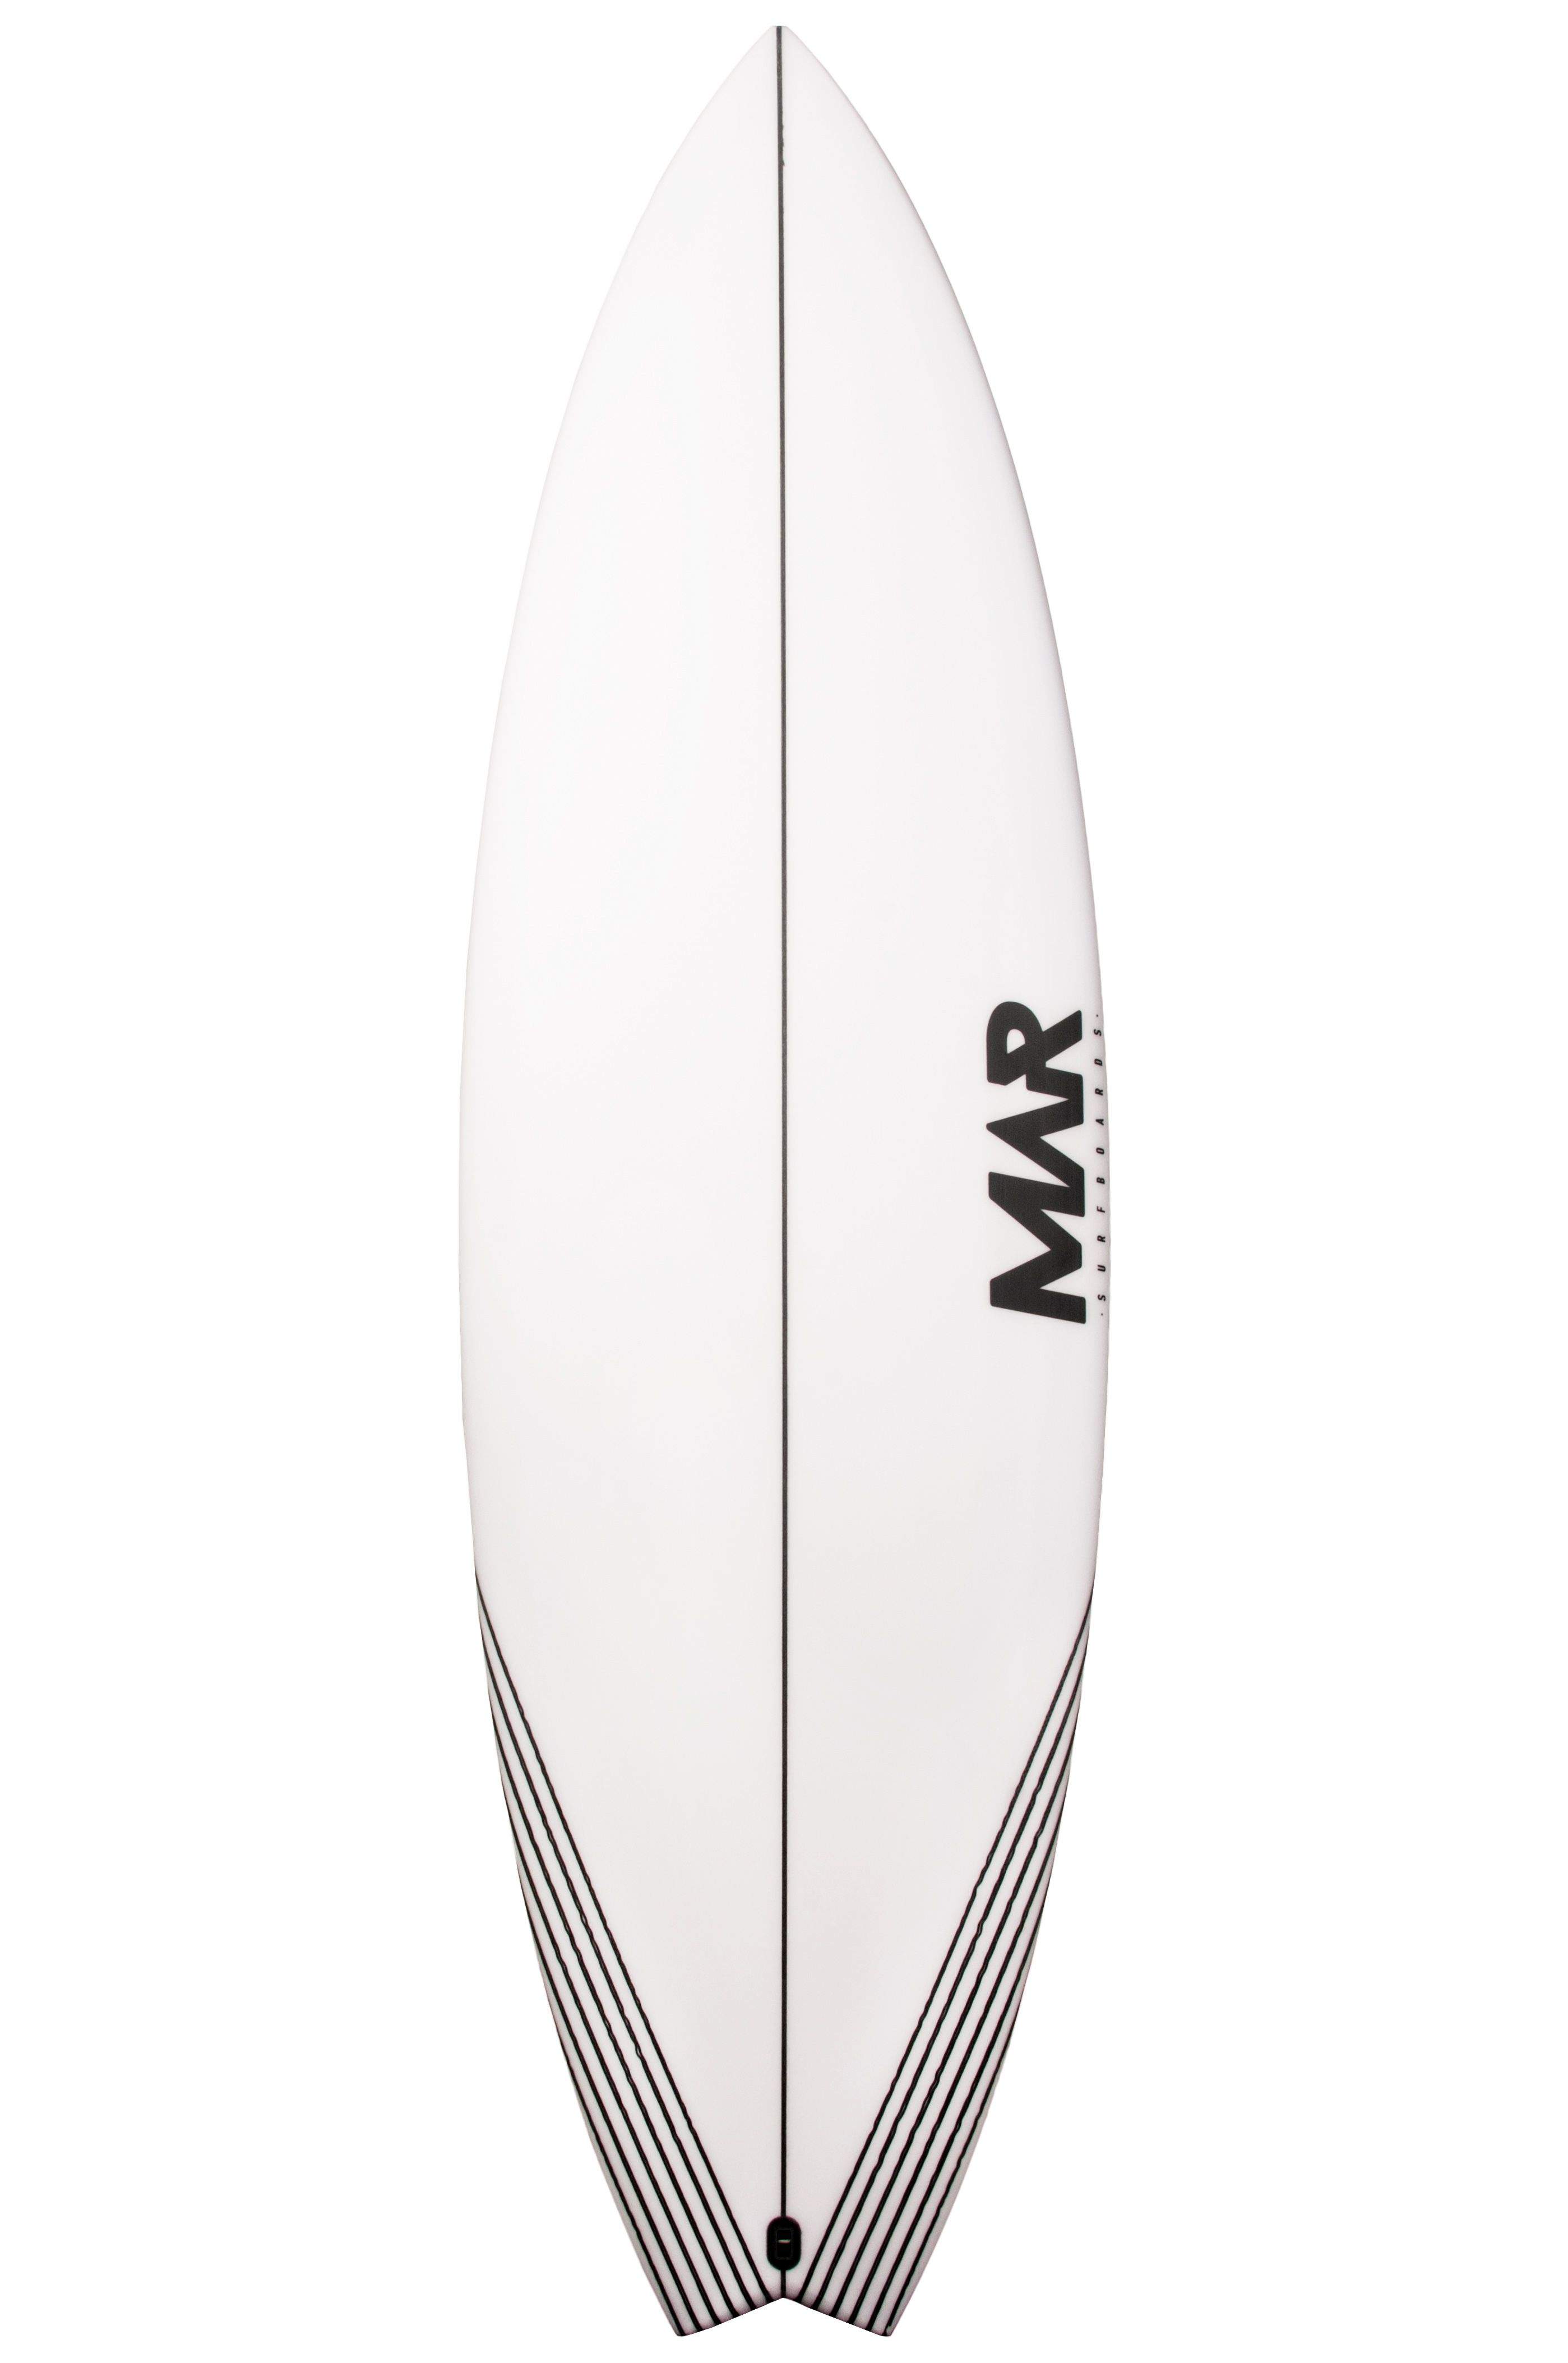 Prancha Surf Mar 6'6 PARROT PU Swallow Tail - White FCS II 6ft6